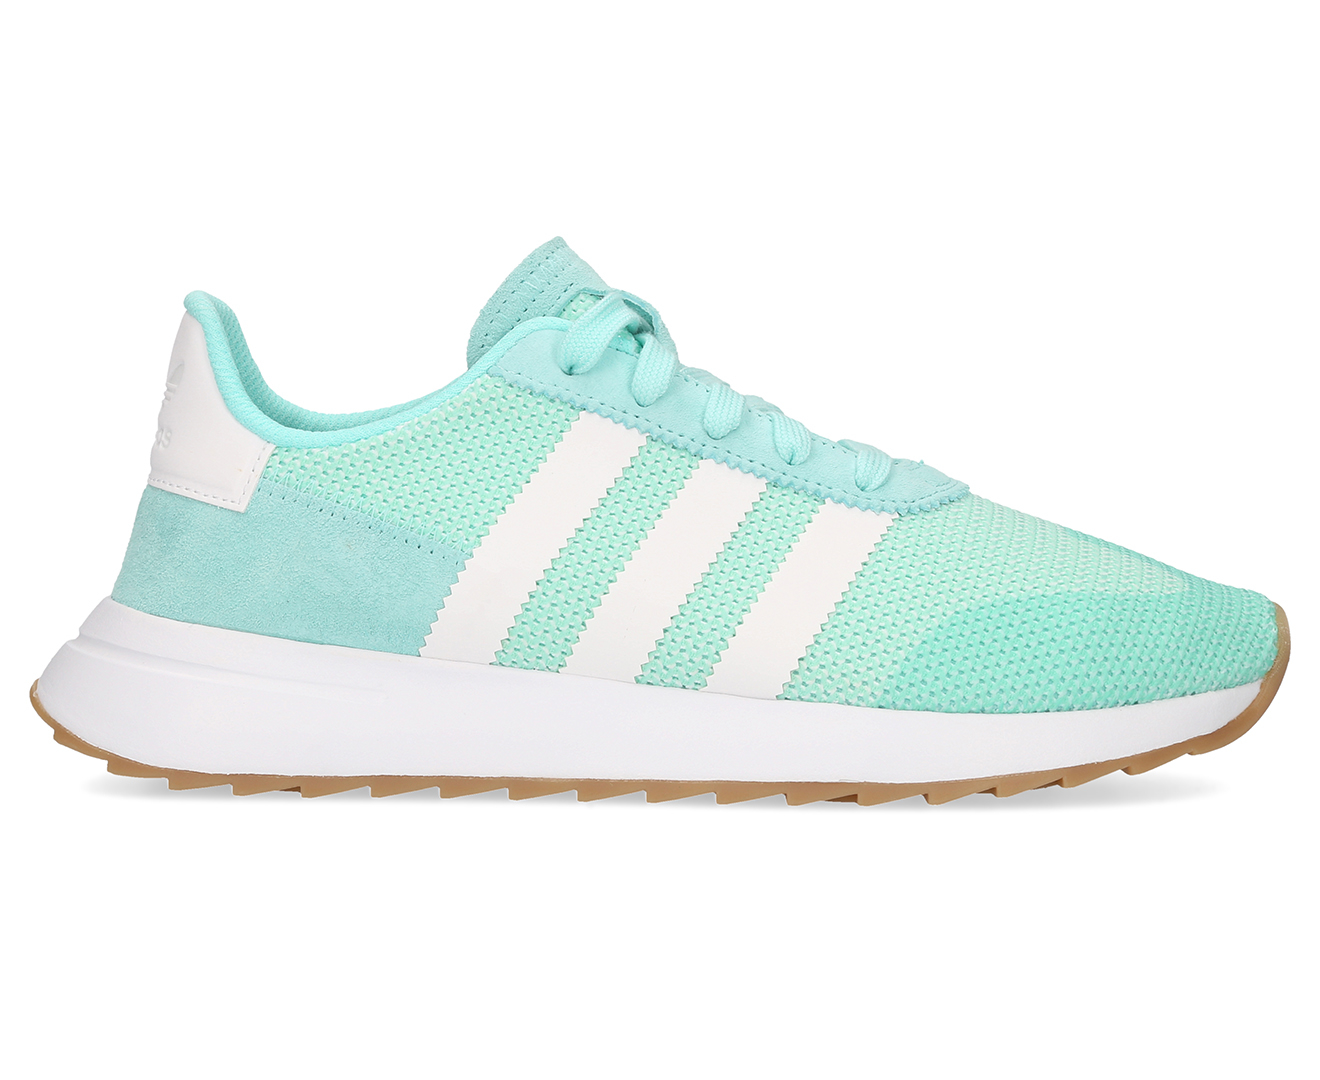 1bded6537d63 Adidas Originals Women s FLB Runner - Energy Aqua   Cloud White   Gum